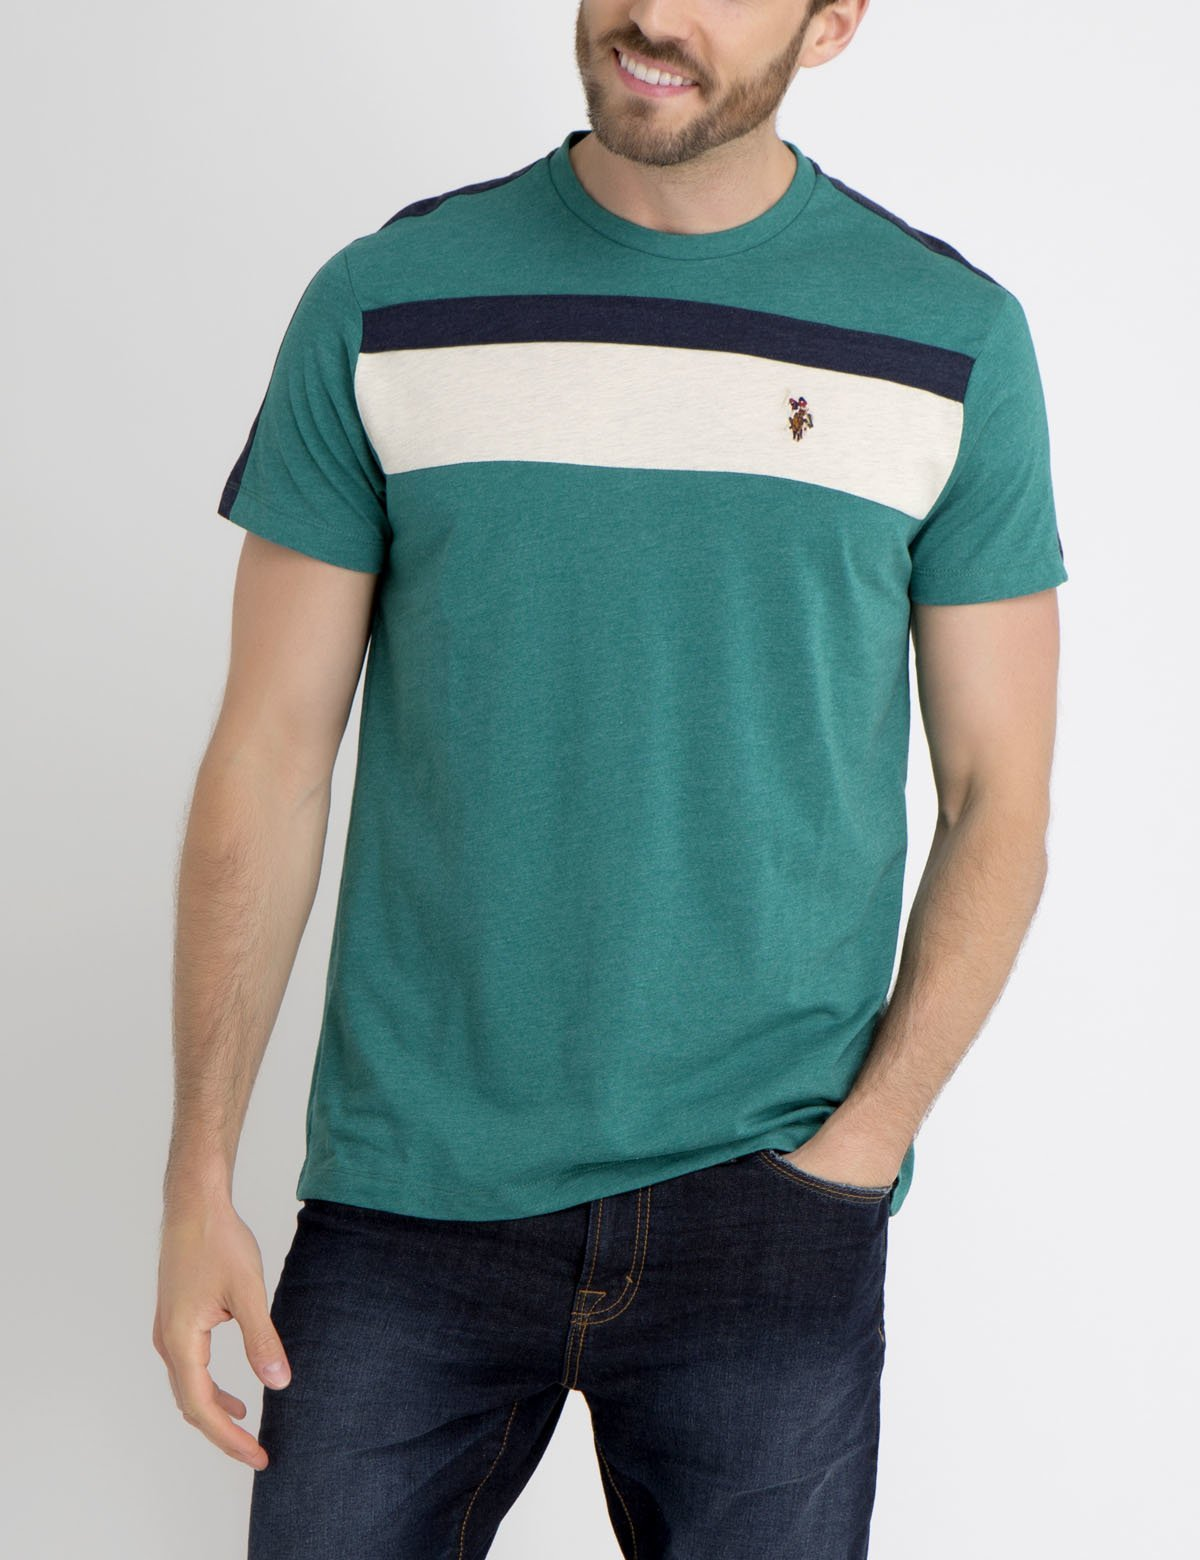 MULTI CHEST STRIPED T-SHIRT - U.S. Polo Assn.